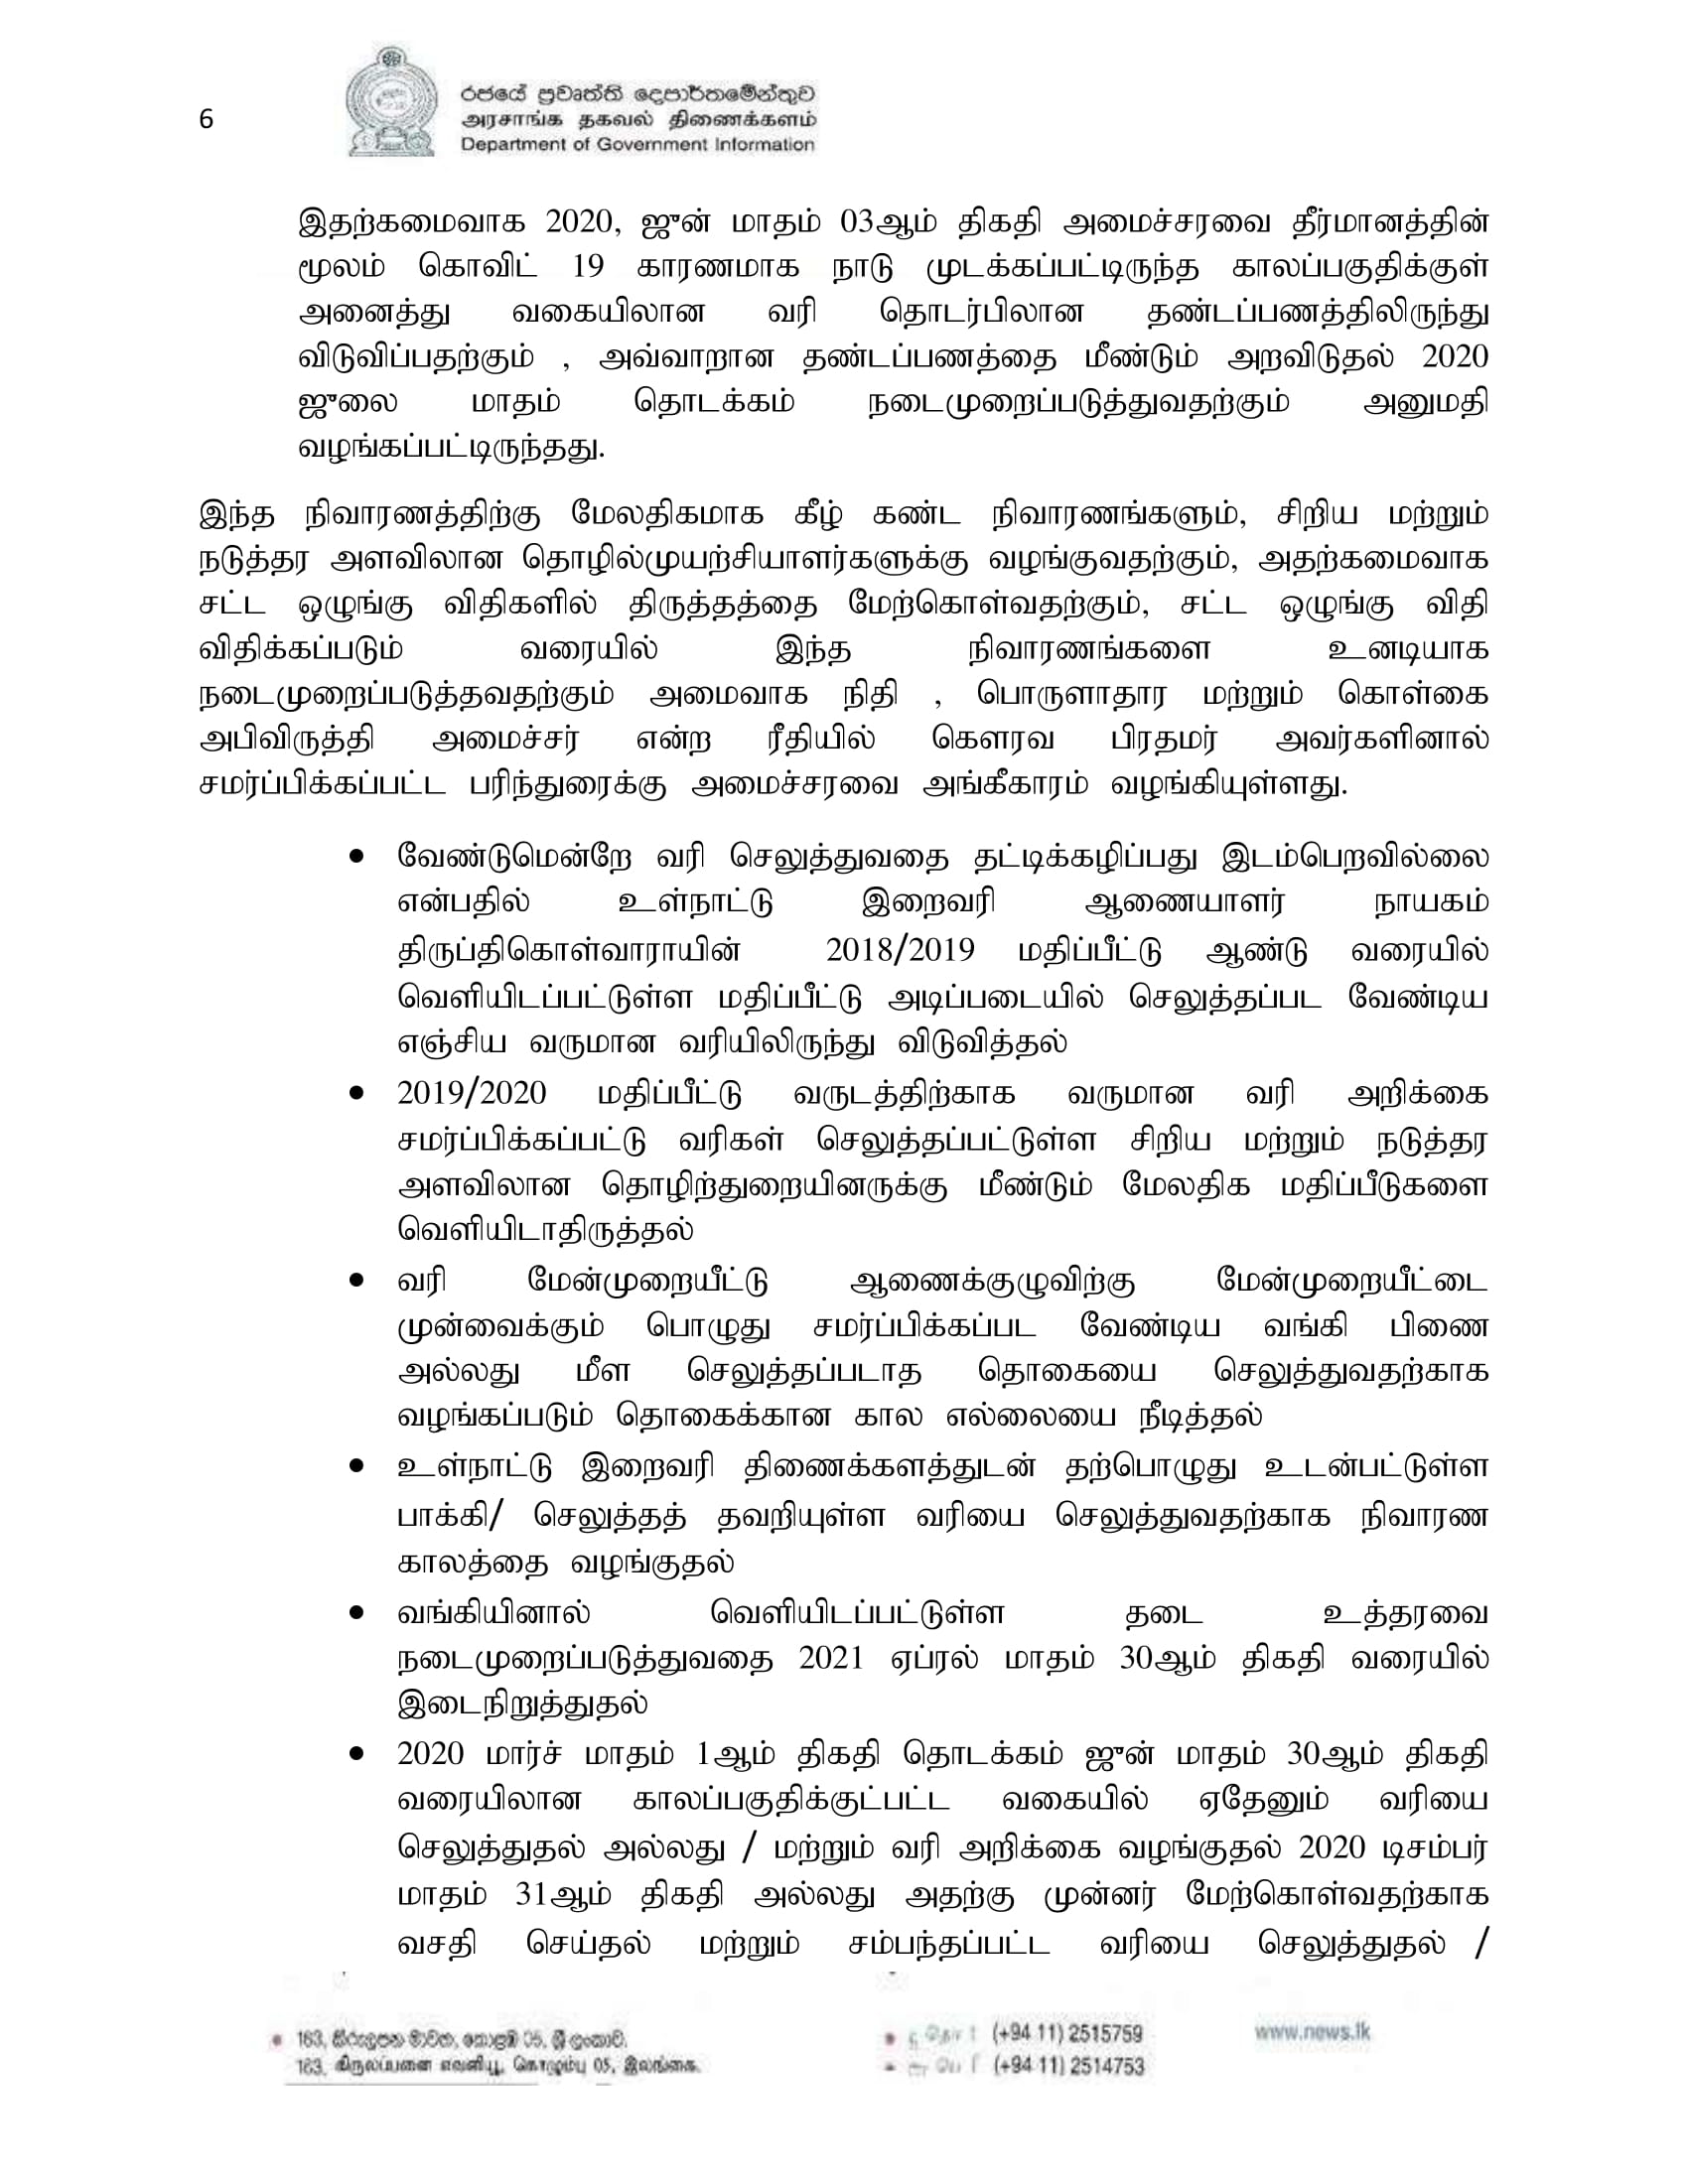 2020.06.24 Cabinet Tamil 1 1 6